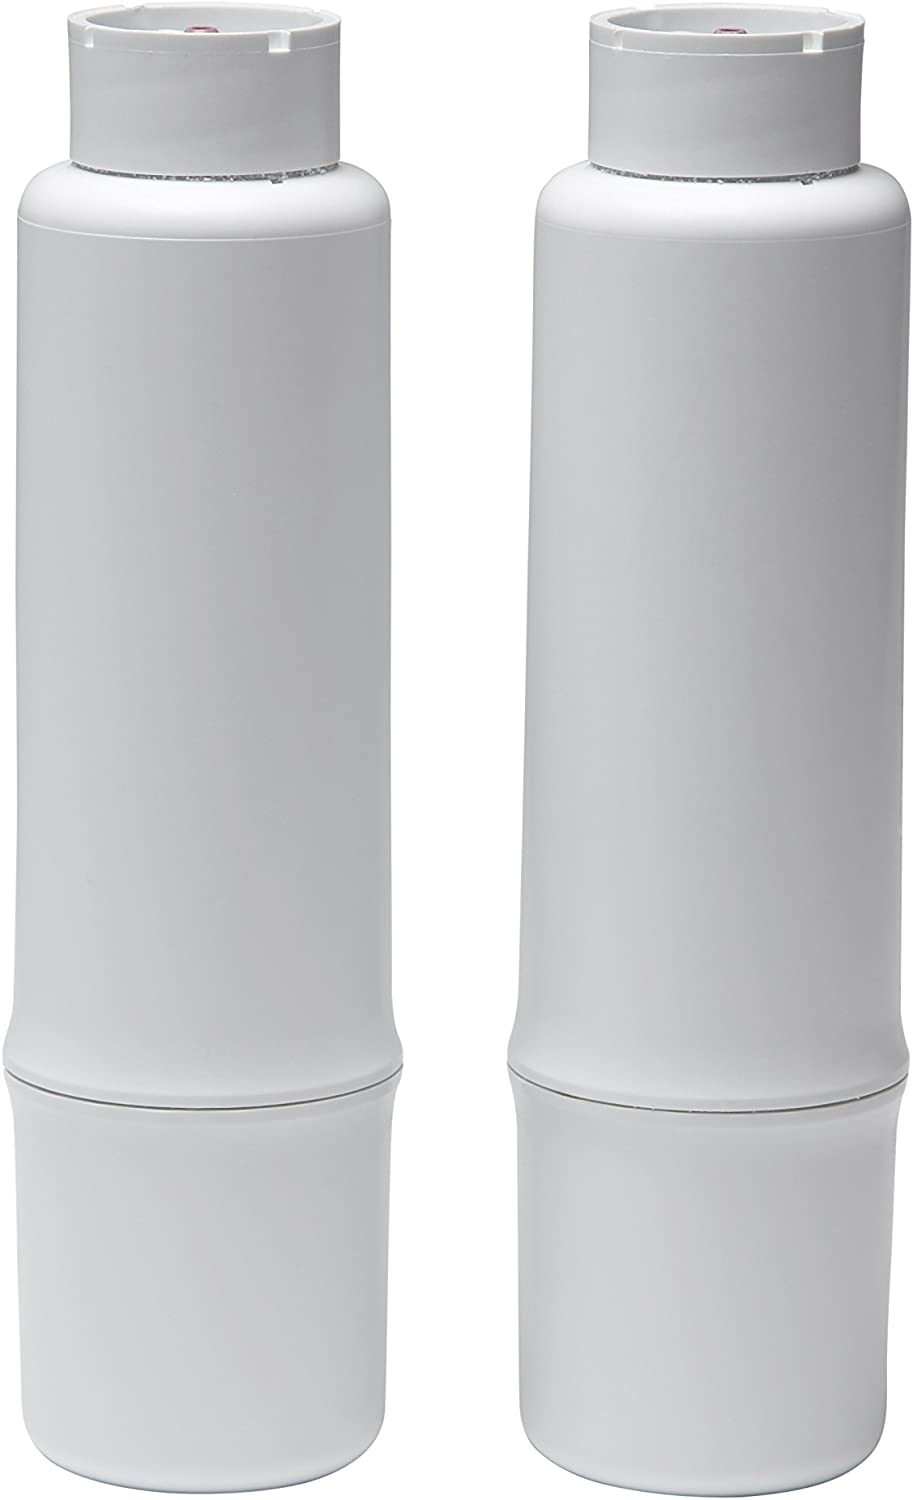 Glacier Bay HDGMBF4 Ultimate Defense 6-Month Replacement Filter 2 Pack (Fits System HDGMBS4)